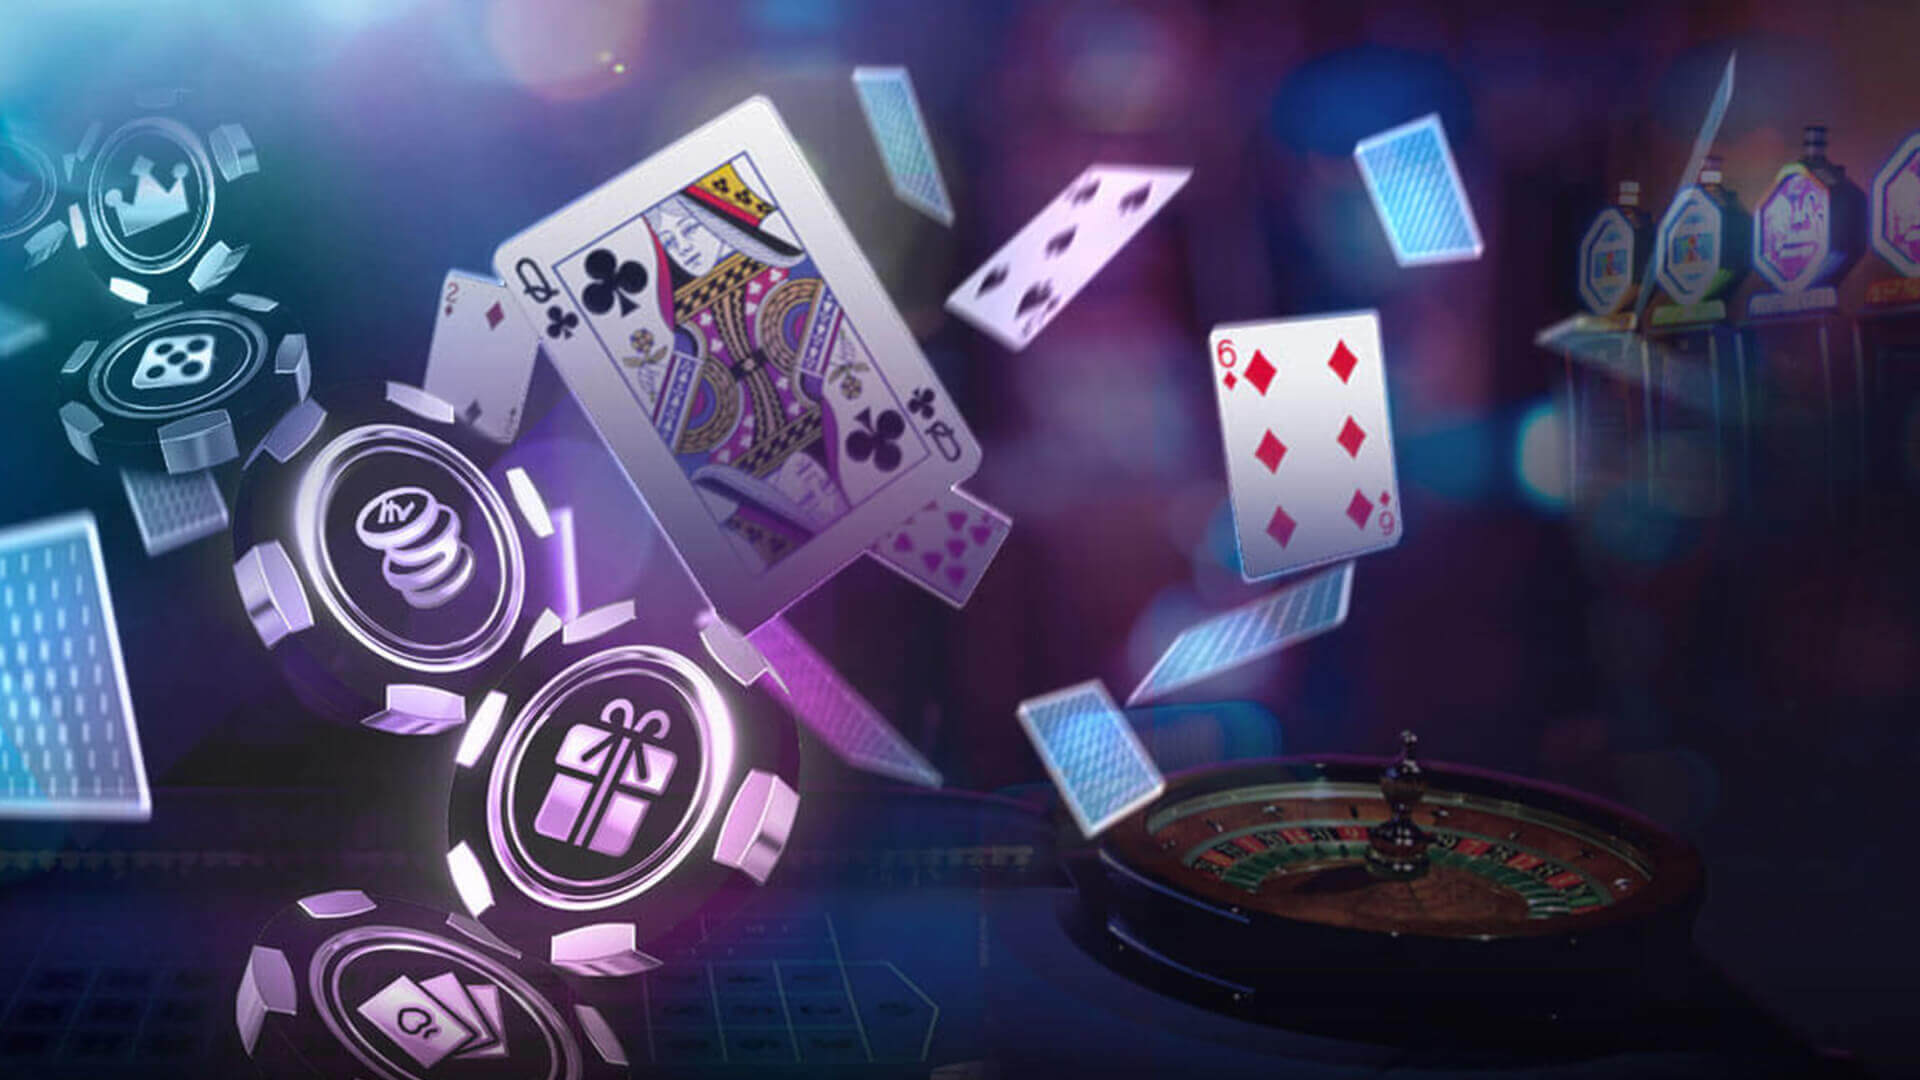 Take This Casino Have A Look At And You'll See Your Struggles